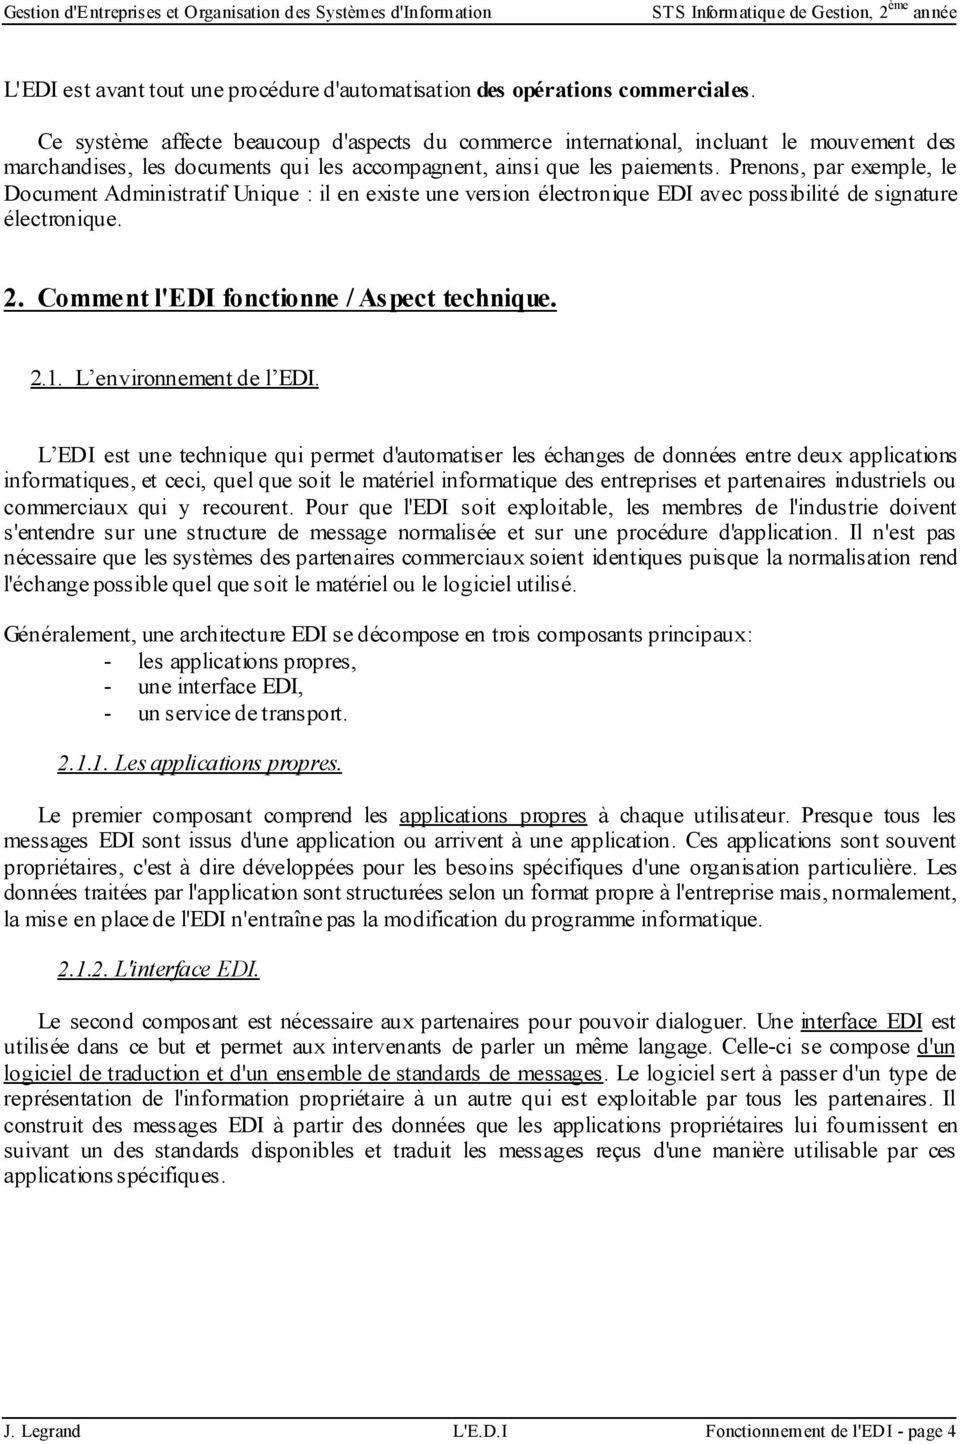 Prenons, par exemple, le Document Administratif Unique : il en existe une version électronique EDI avec possibilité de signature électronique. 2. Comment l'edi fonctionne / Aspect technique. 2.1.